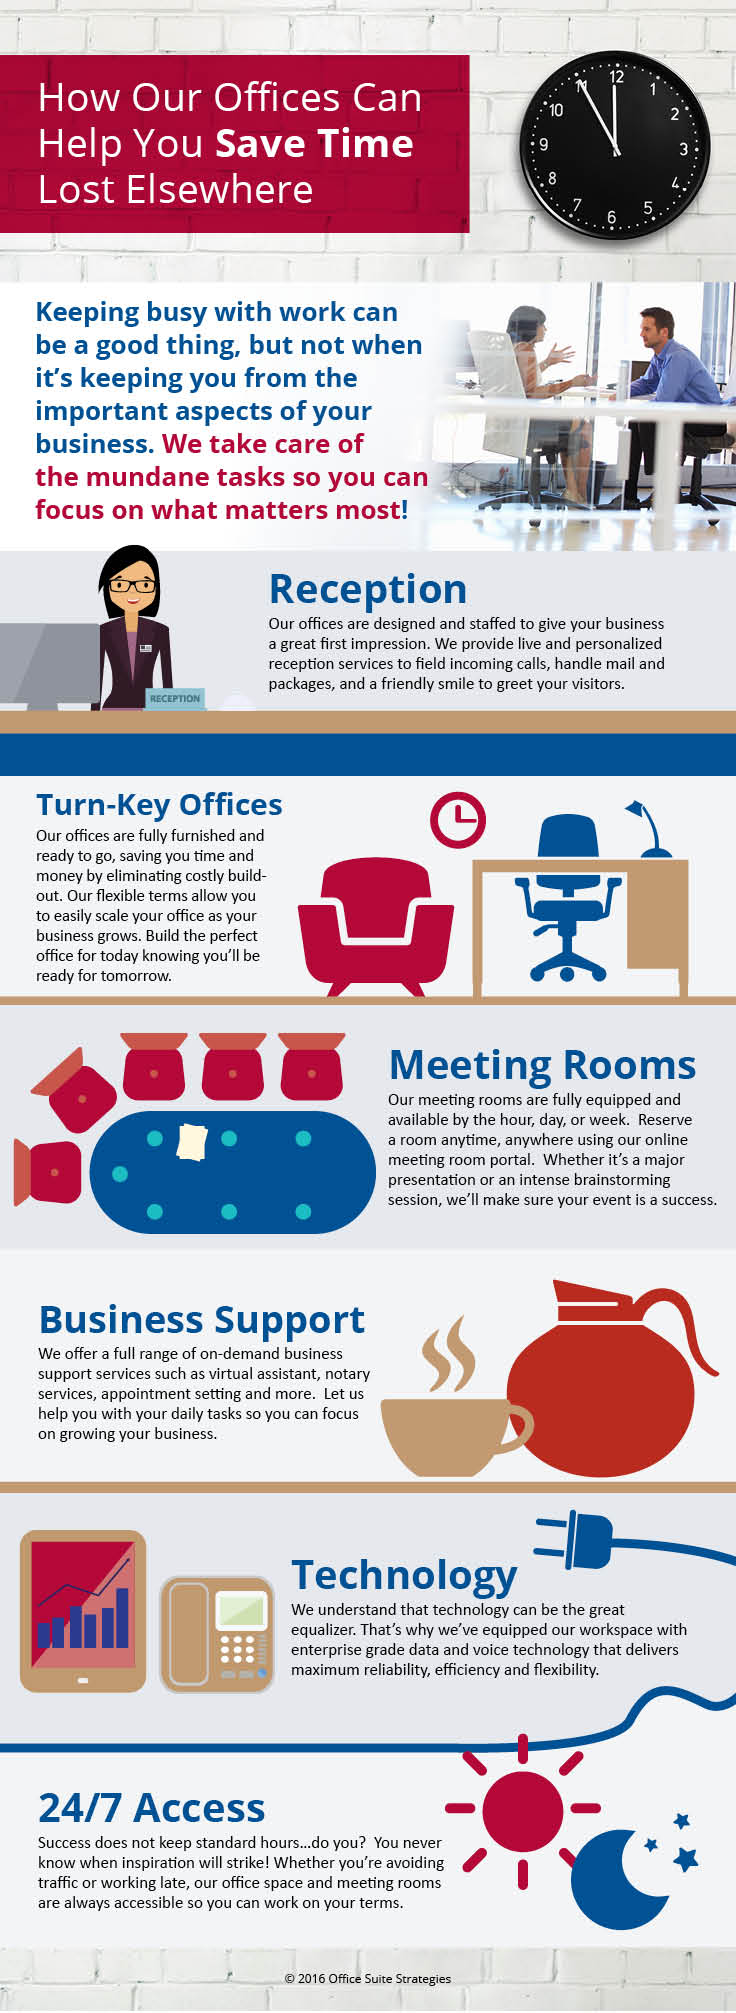 Save Time Lost Elsewhere With Green Hills Office Suites